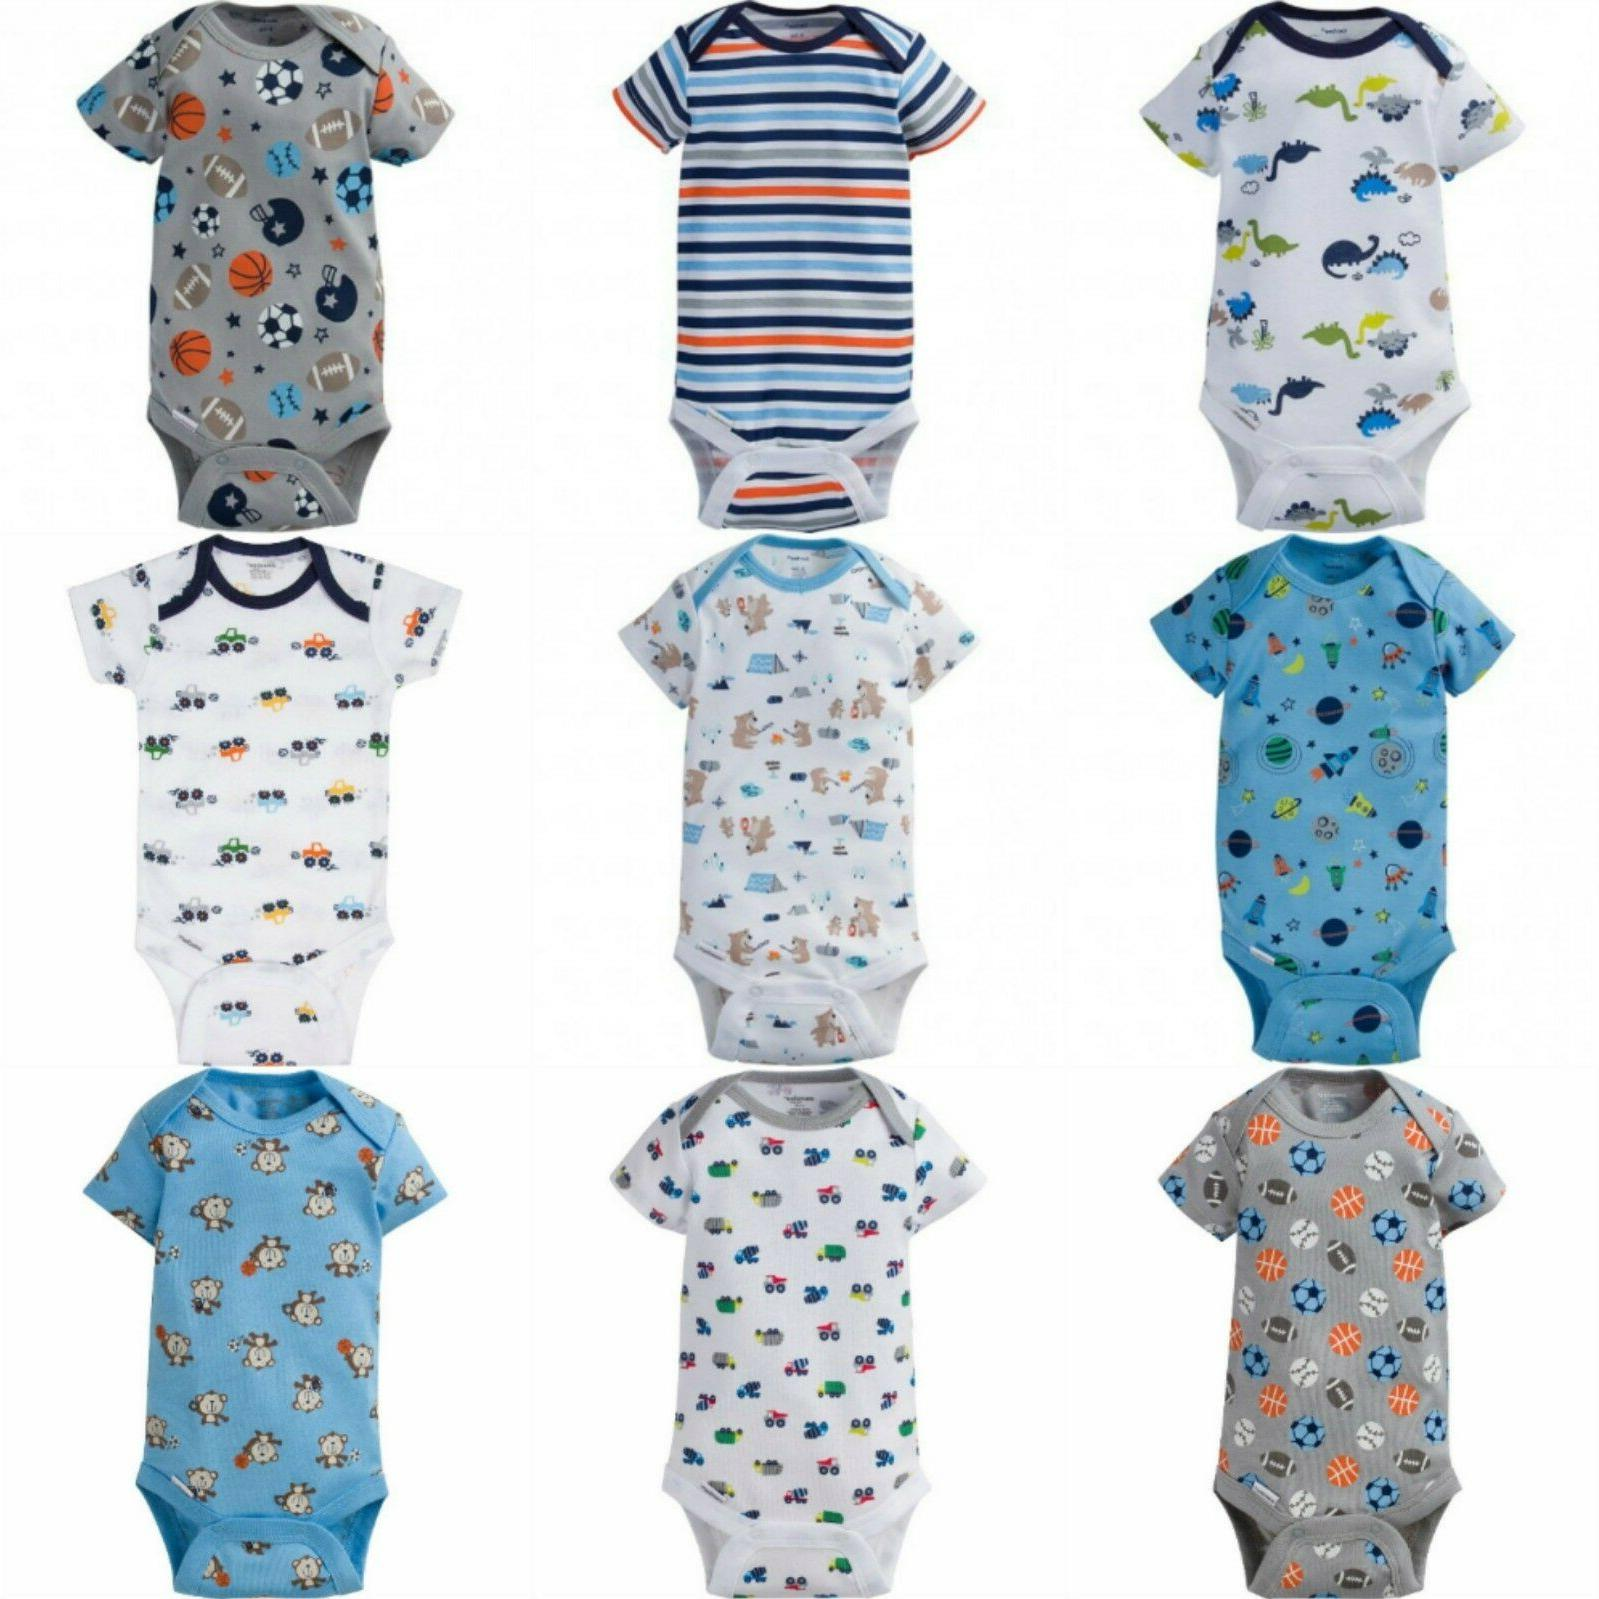 Gerber Baby Boys Onesies Assorted Prints Graphics Newborn 0-